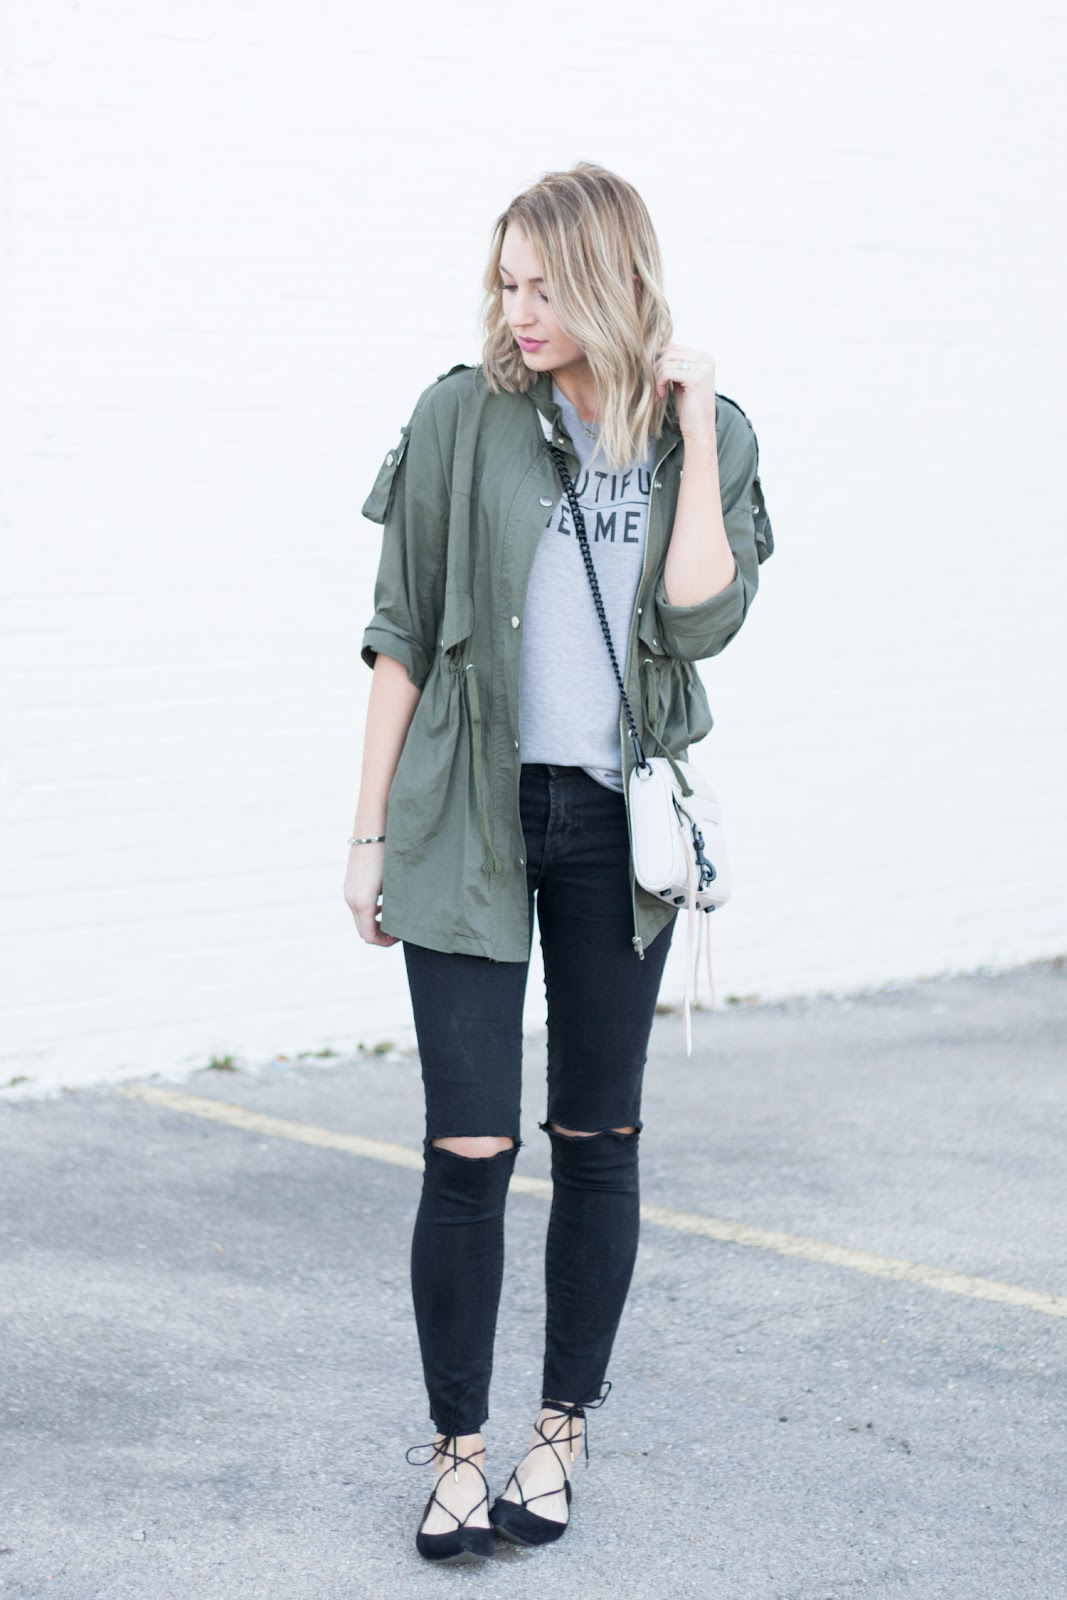 Casual layered outfit